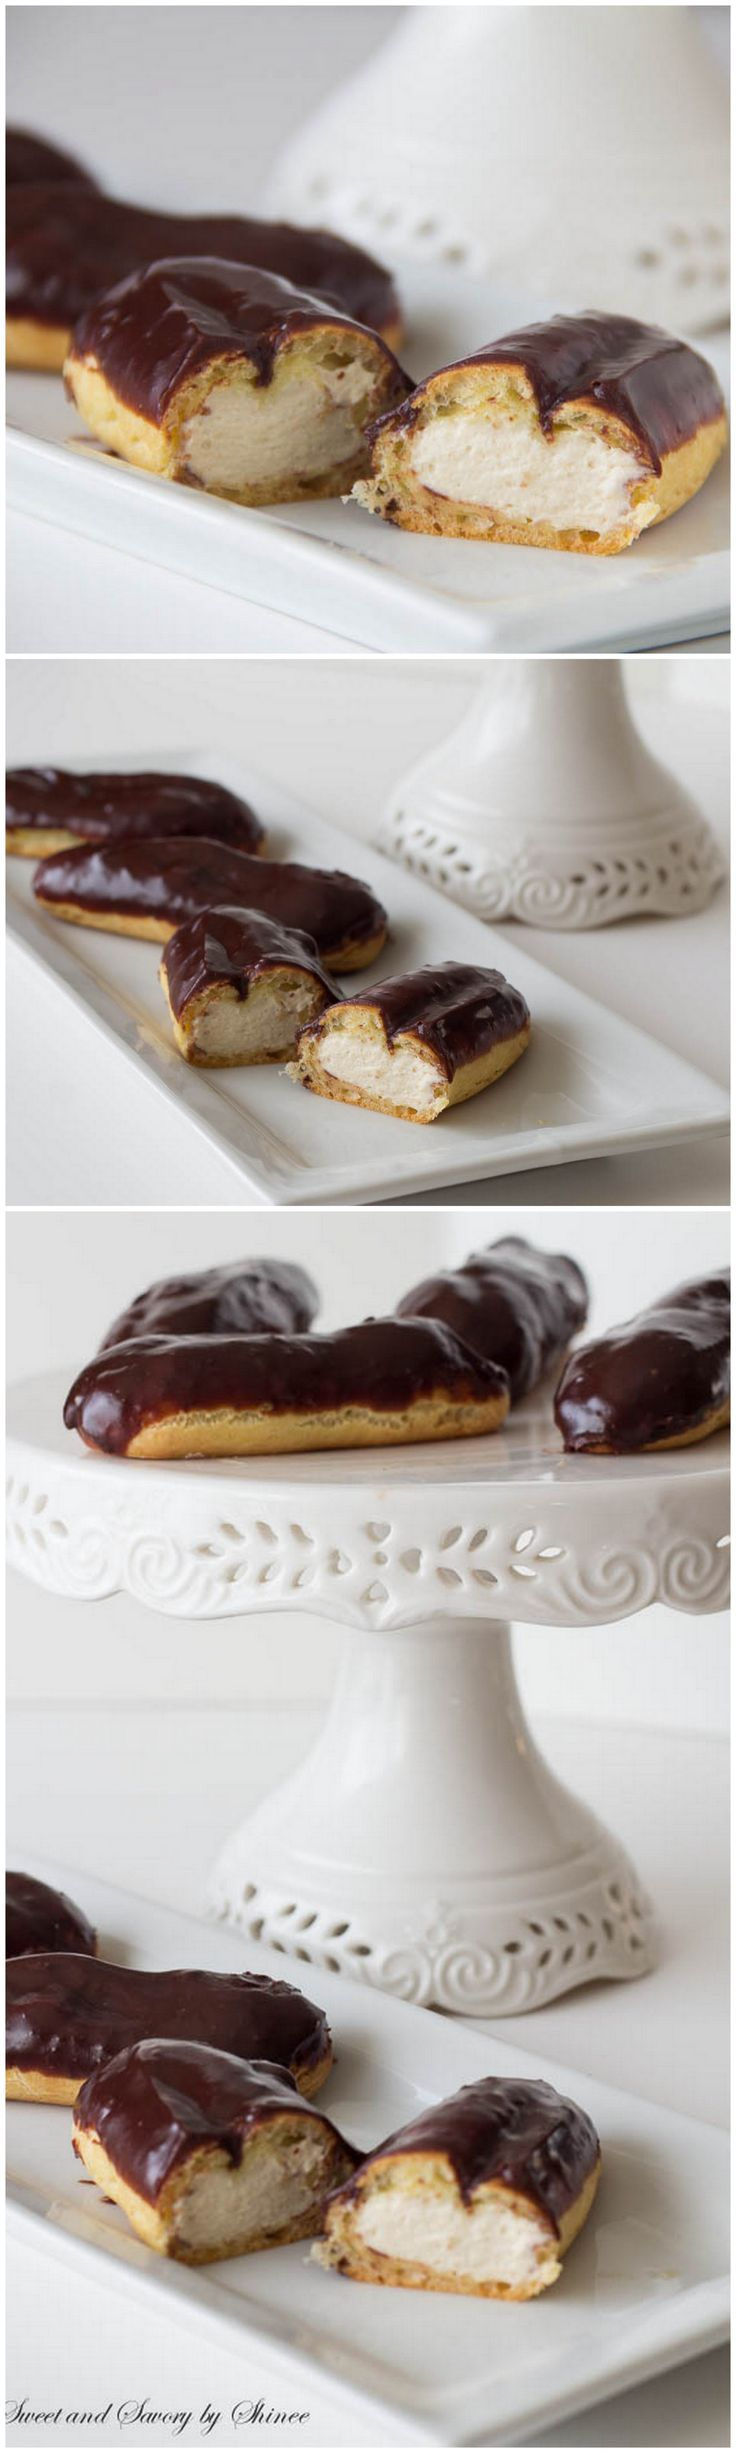 Delicious eclairs filled with vanilla pastry cream. Step-by-step photo recipe, plus video tutorial!